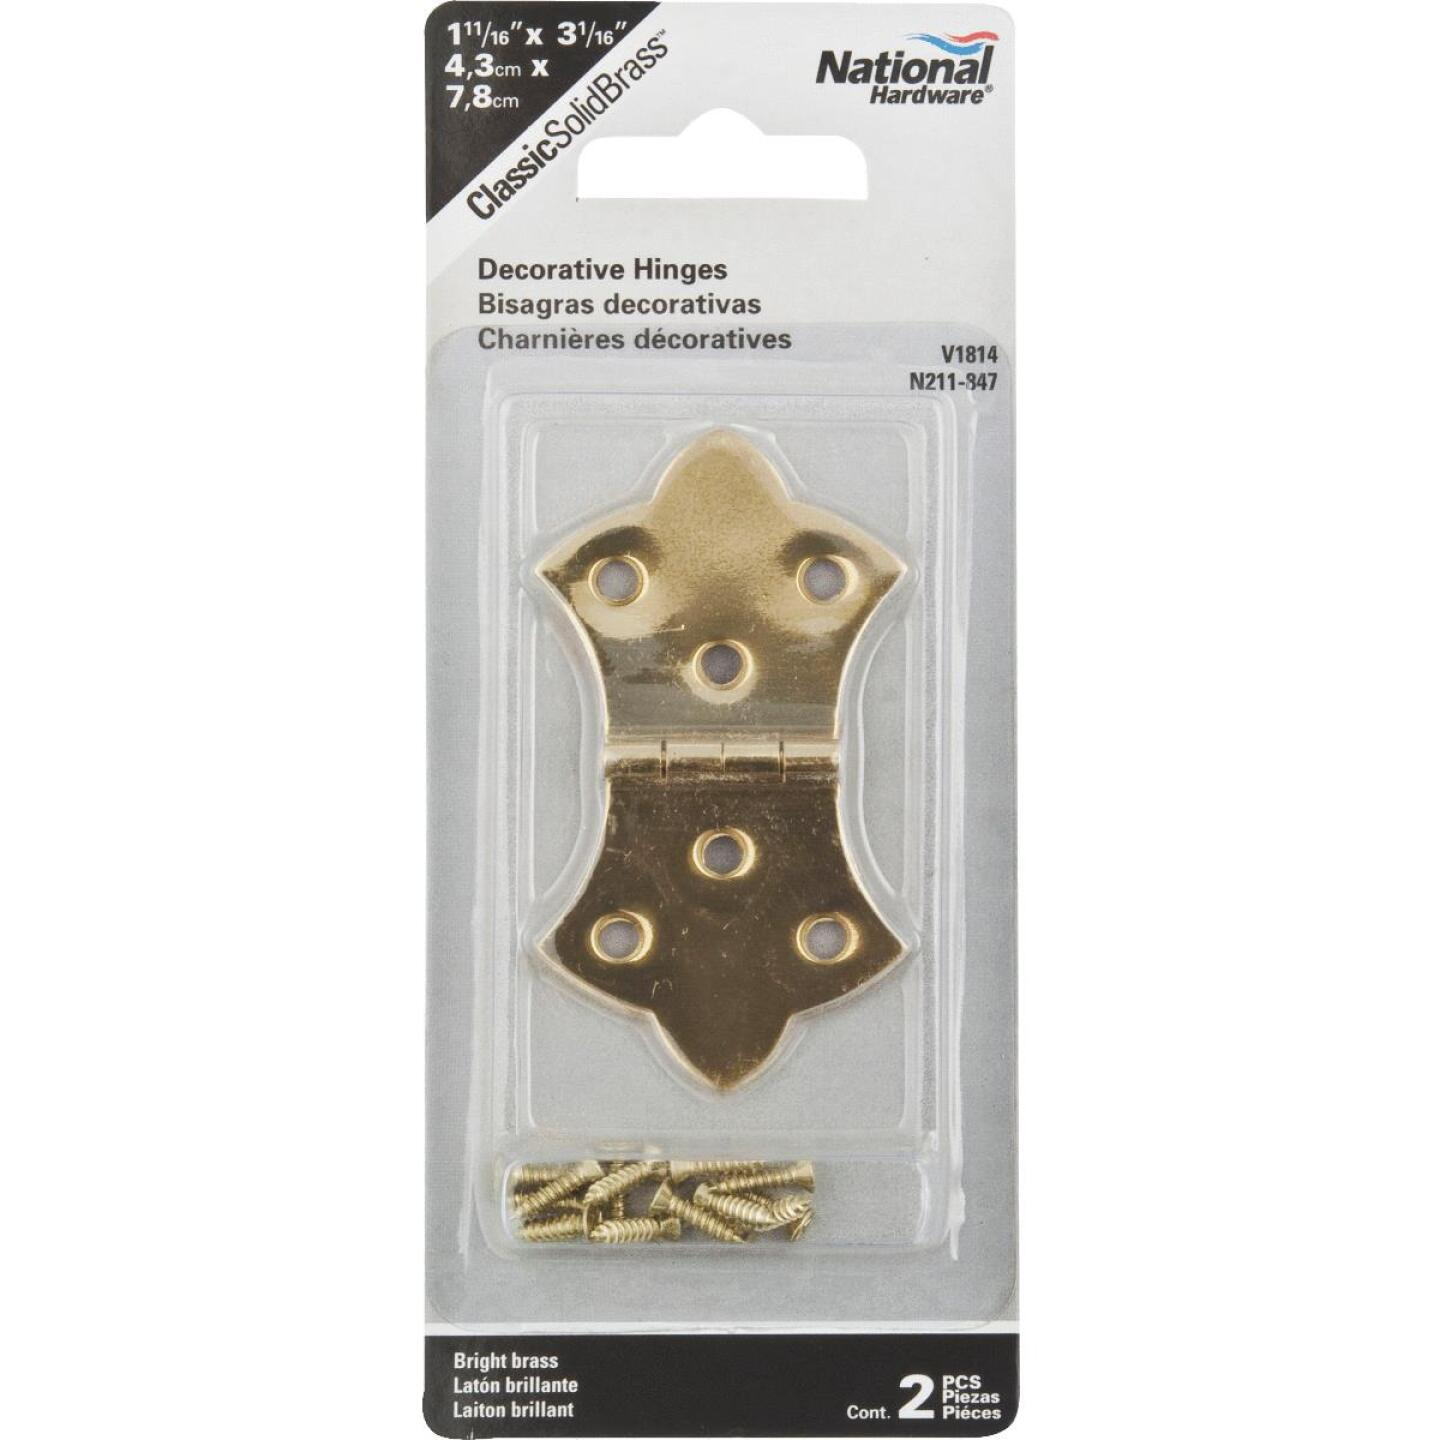 National 1-11/16 In. x 3-1/16 In. Miniature Brass Decorative Hinge (2-Pack) Image 2